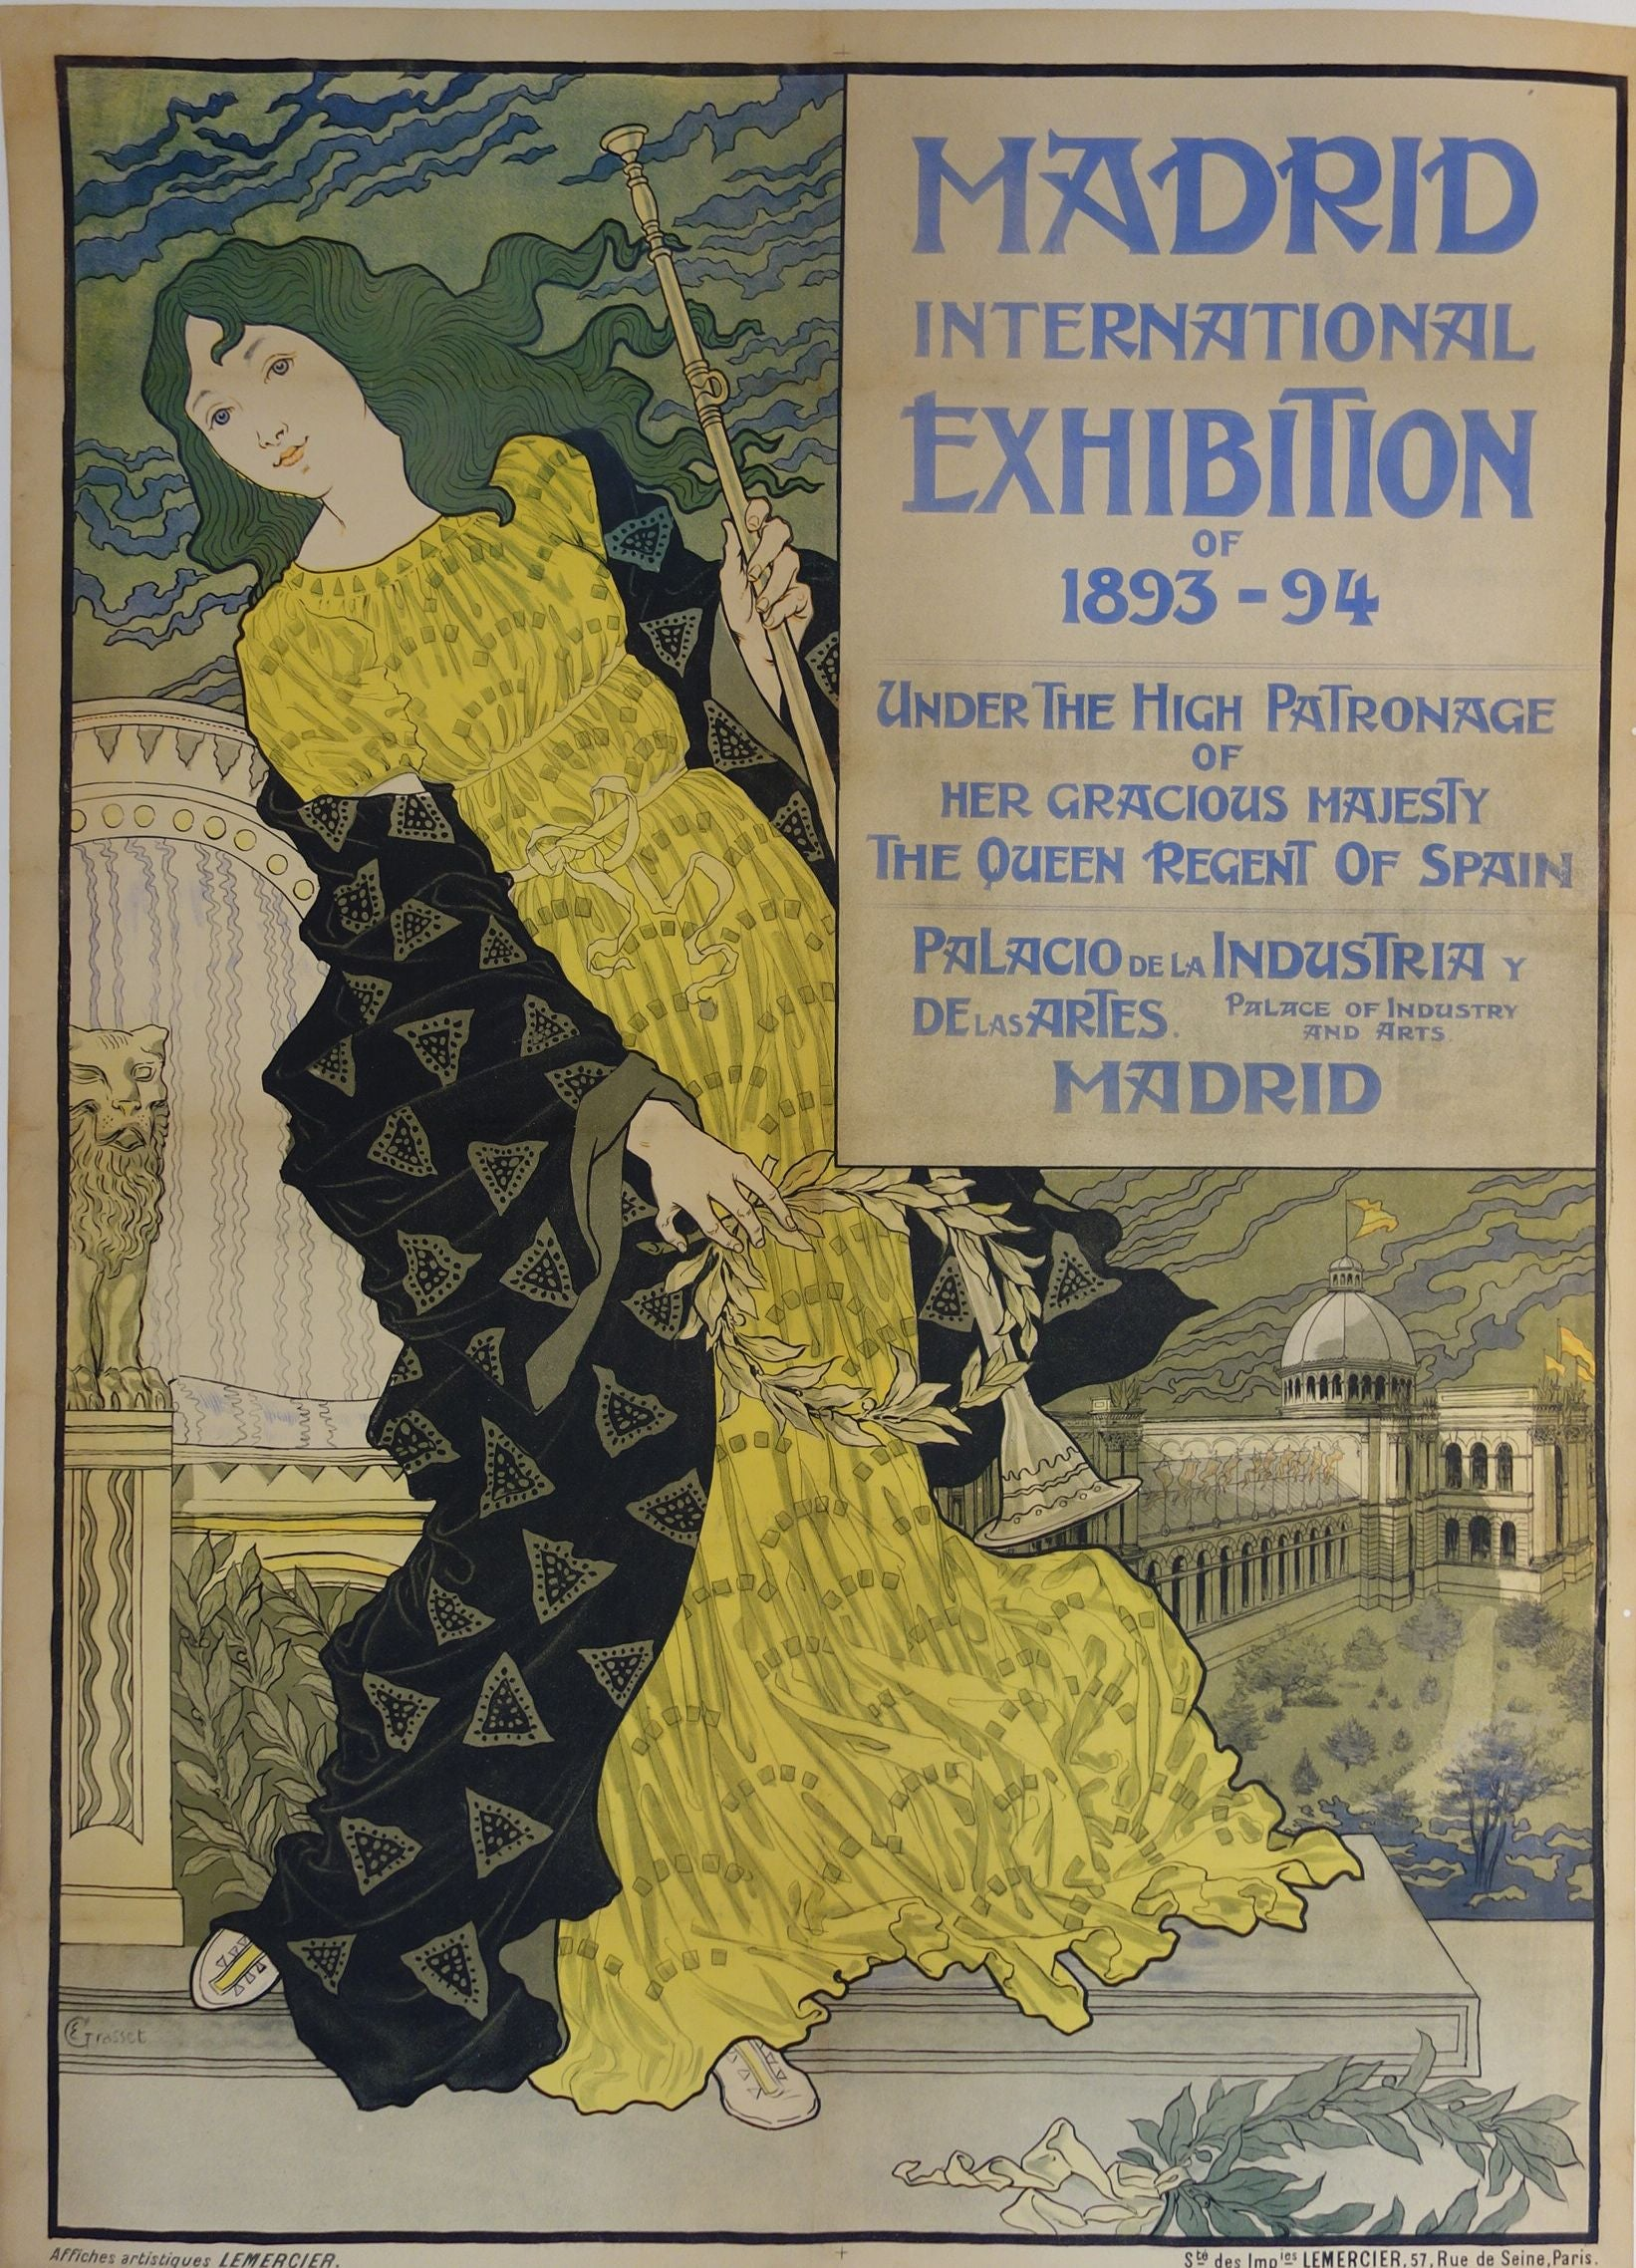 b2ce272714 sold Madrid international exhibition of 1893-94 – Poster Museum